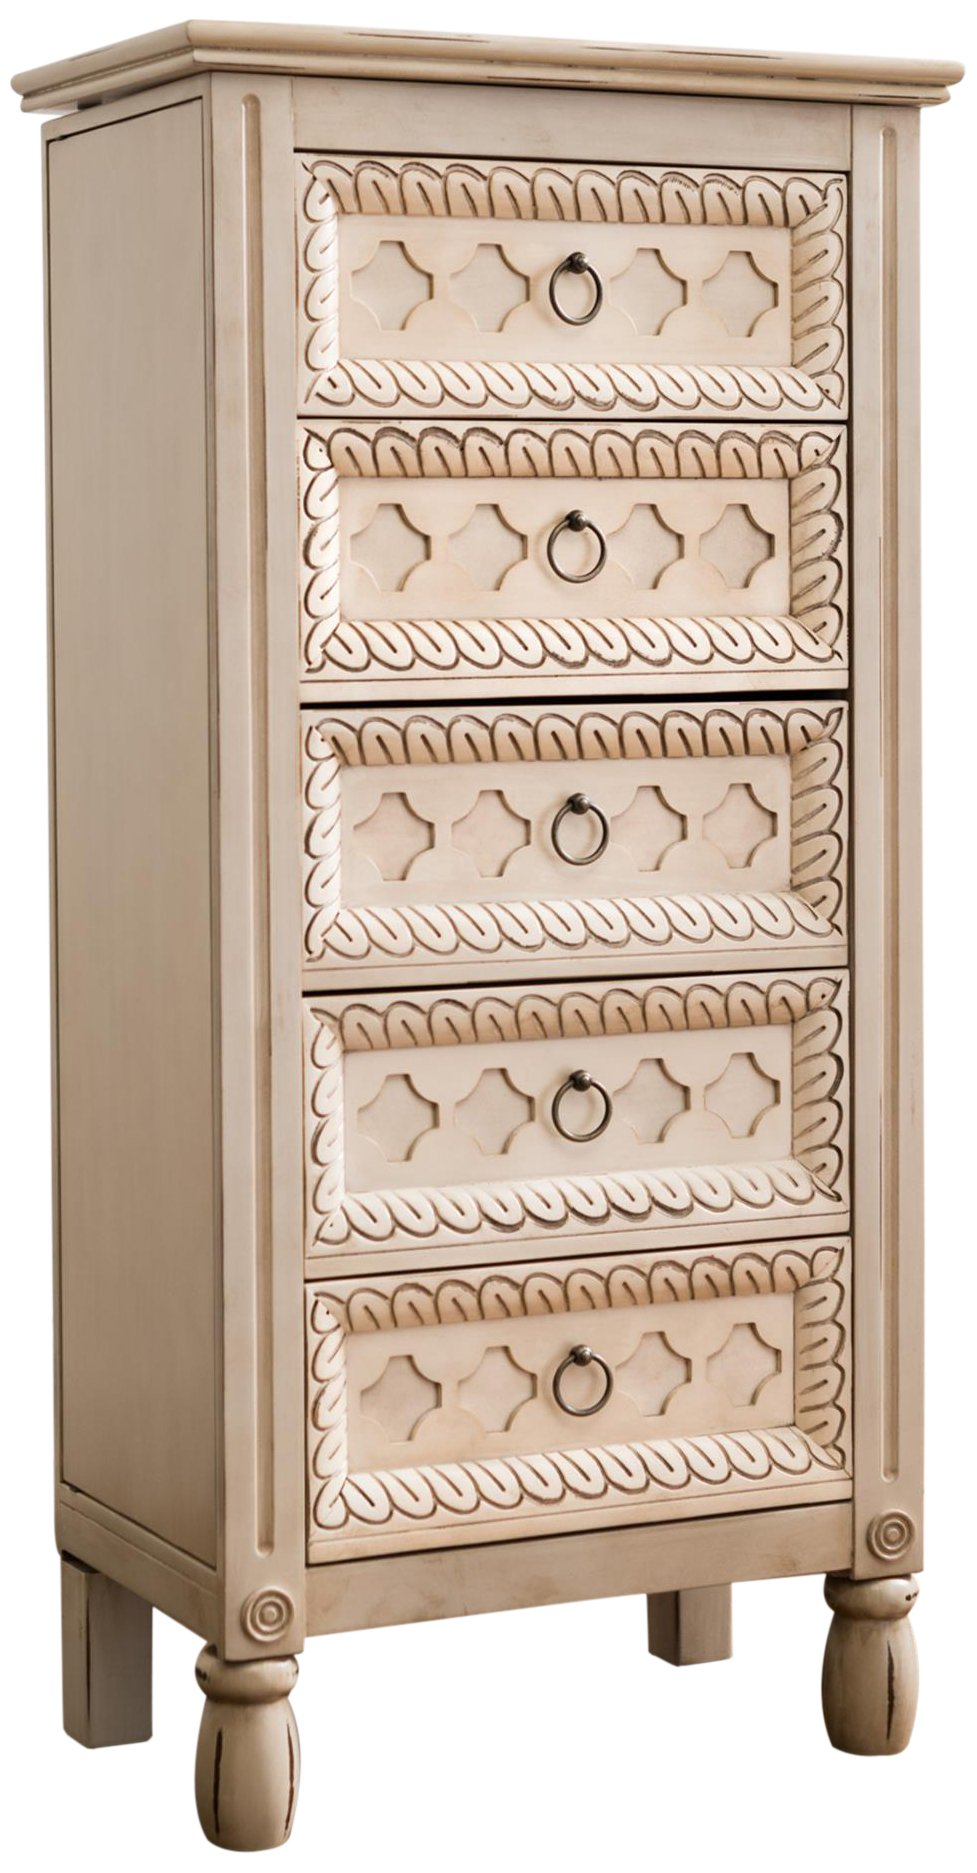 Hives and Honey ''Abby'' Jewelry Armoire, Antique Ivory